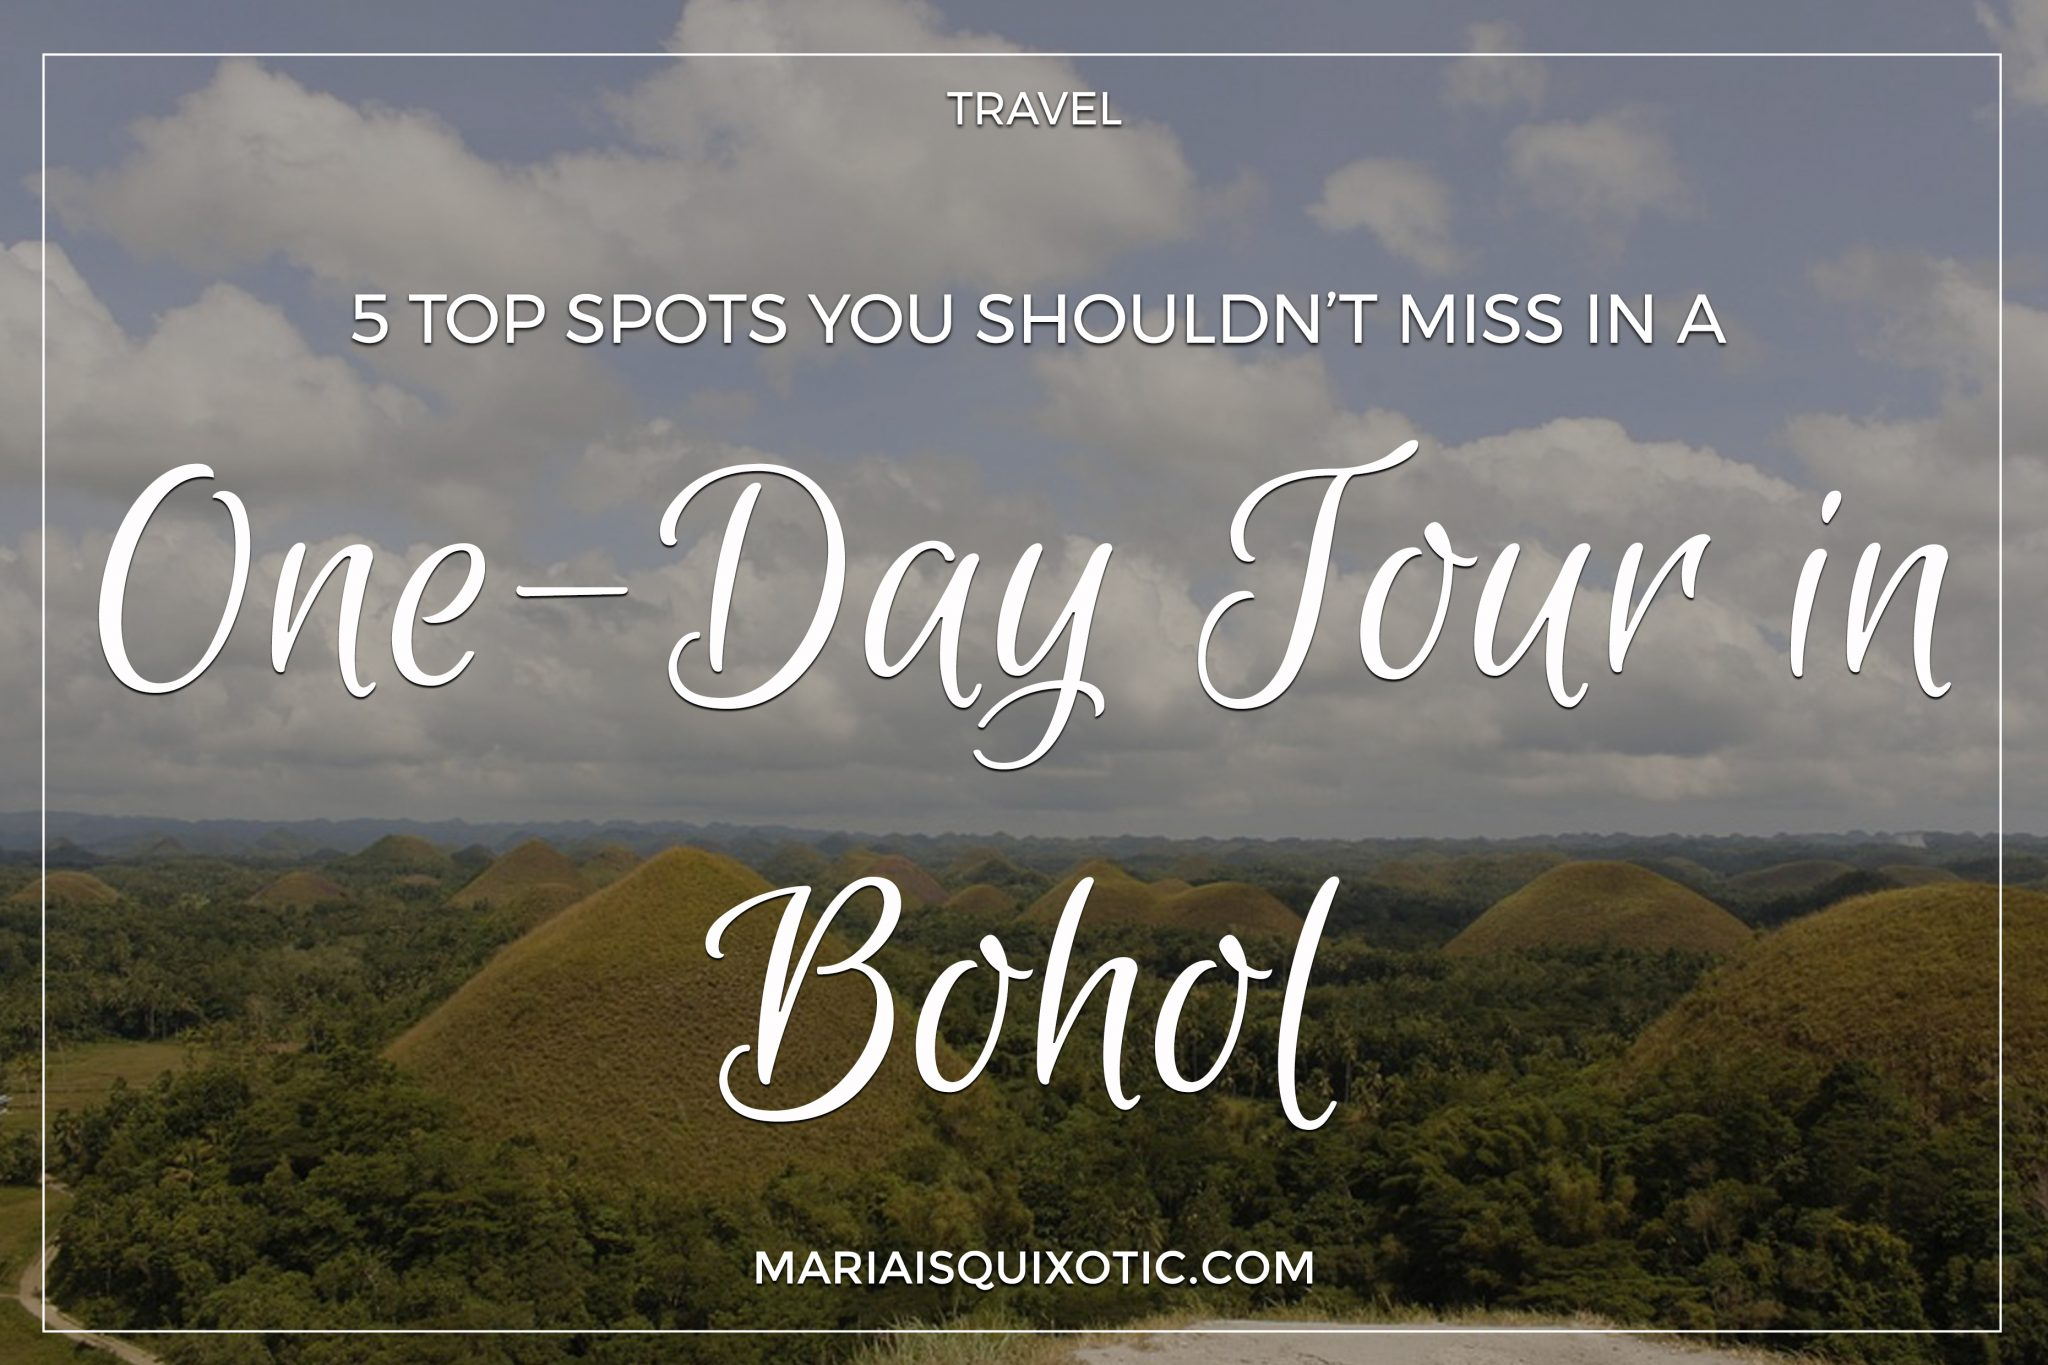 5 Top Spots You Shouldn't Miss In A One-Day Tour In Bohol